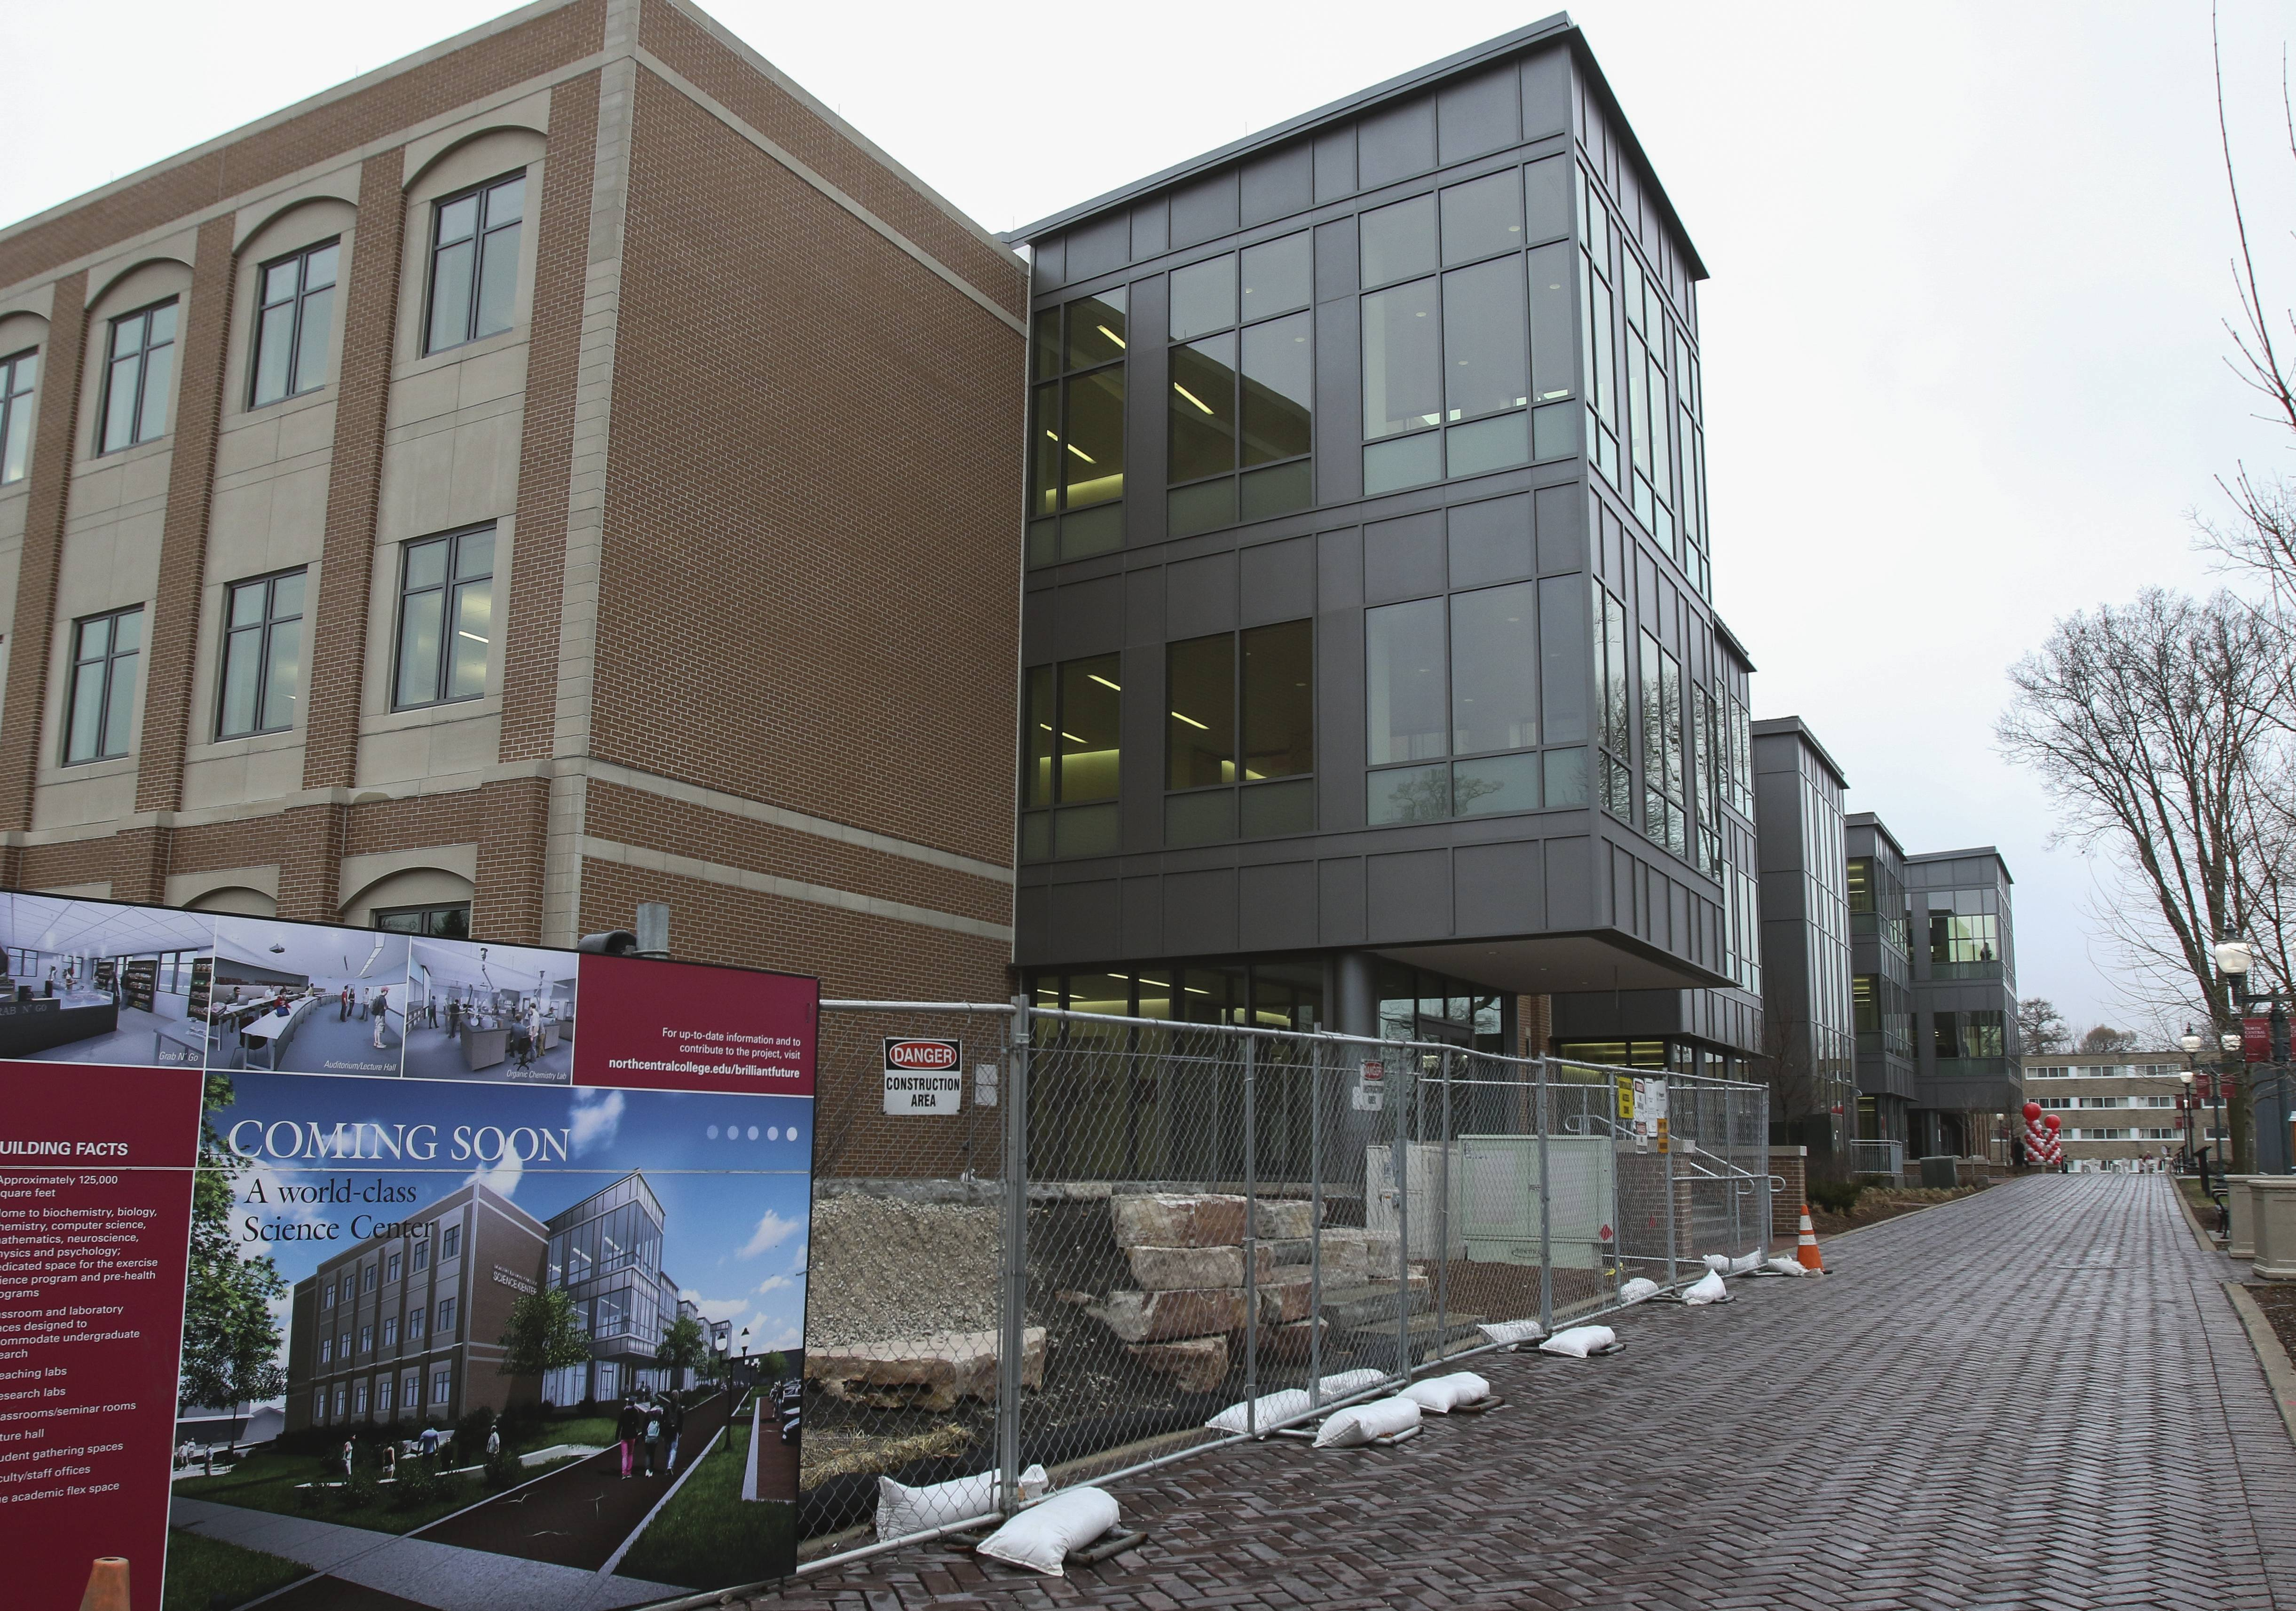 North Central College names science center for Myron Wentz after 'substantial' donation